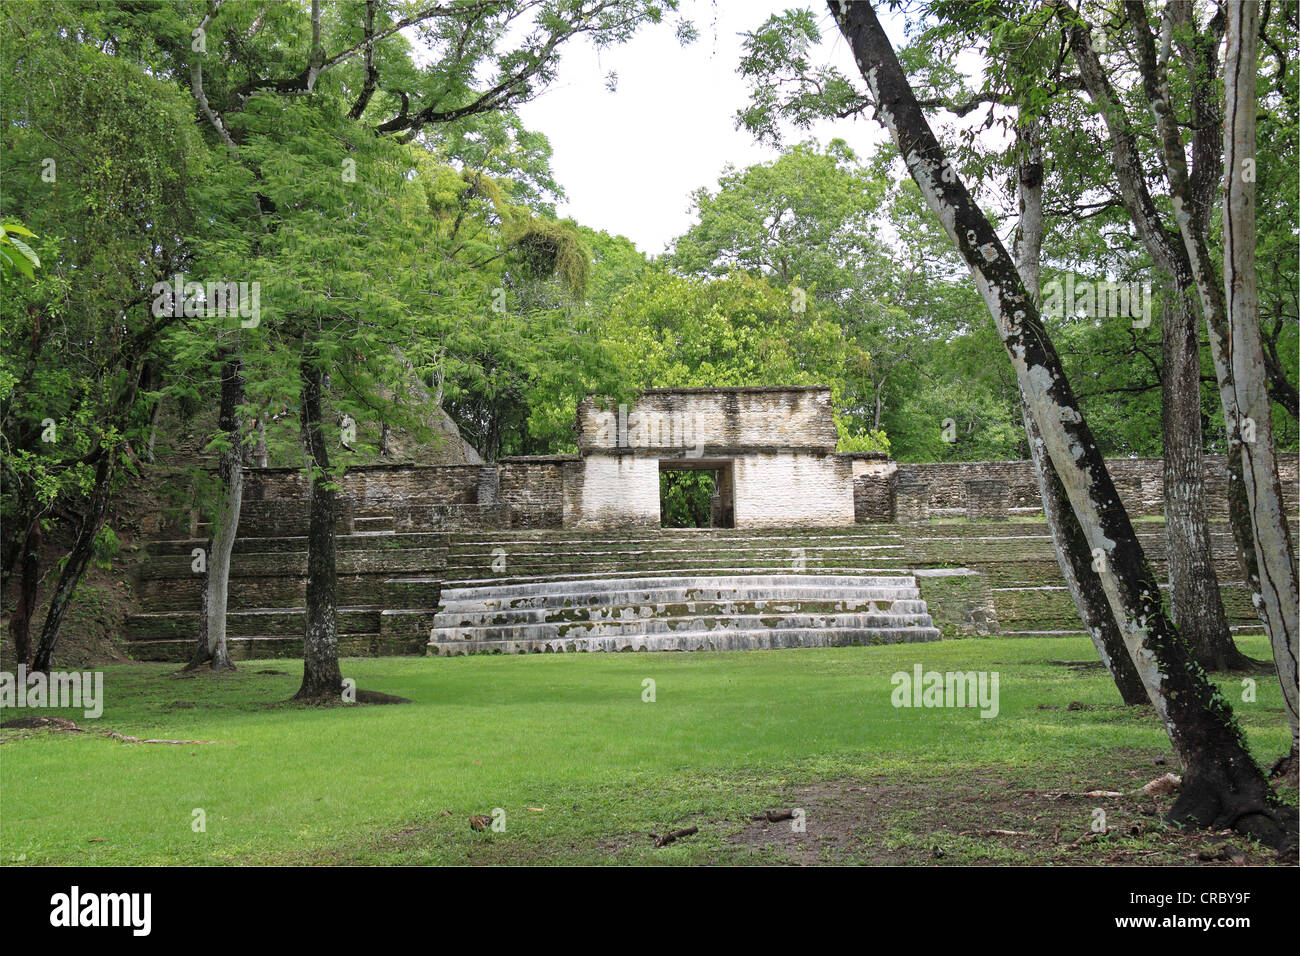 Audiencia building seen from Plaza B, Cahal Pech mayan ruins, near San Ignacio, Cayo, west Belize, Central America - Stock Image